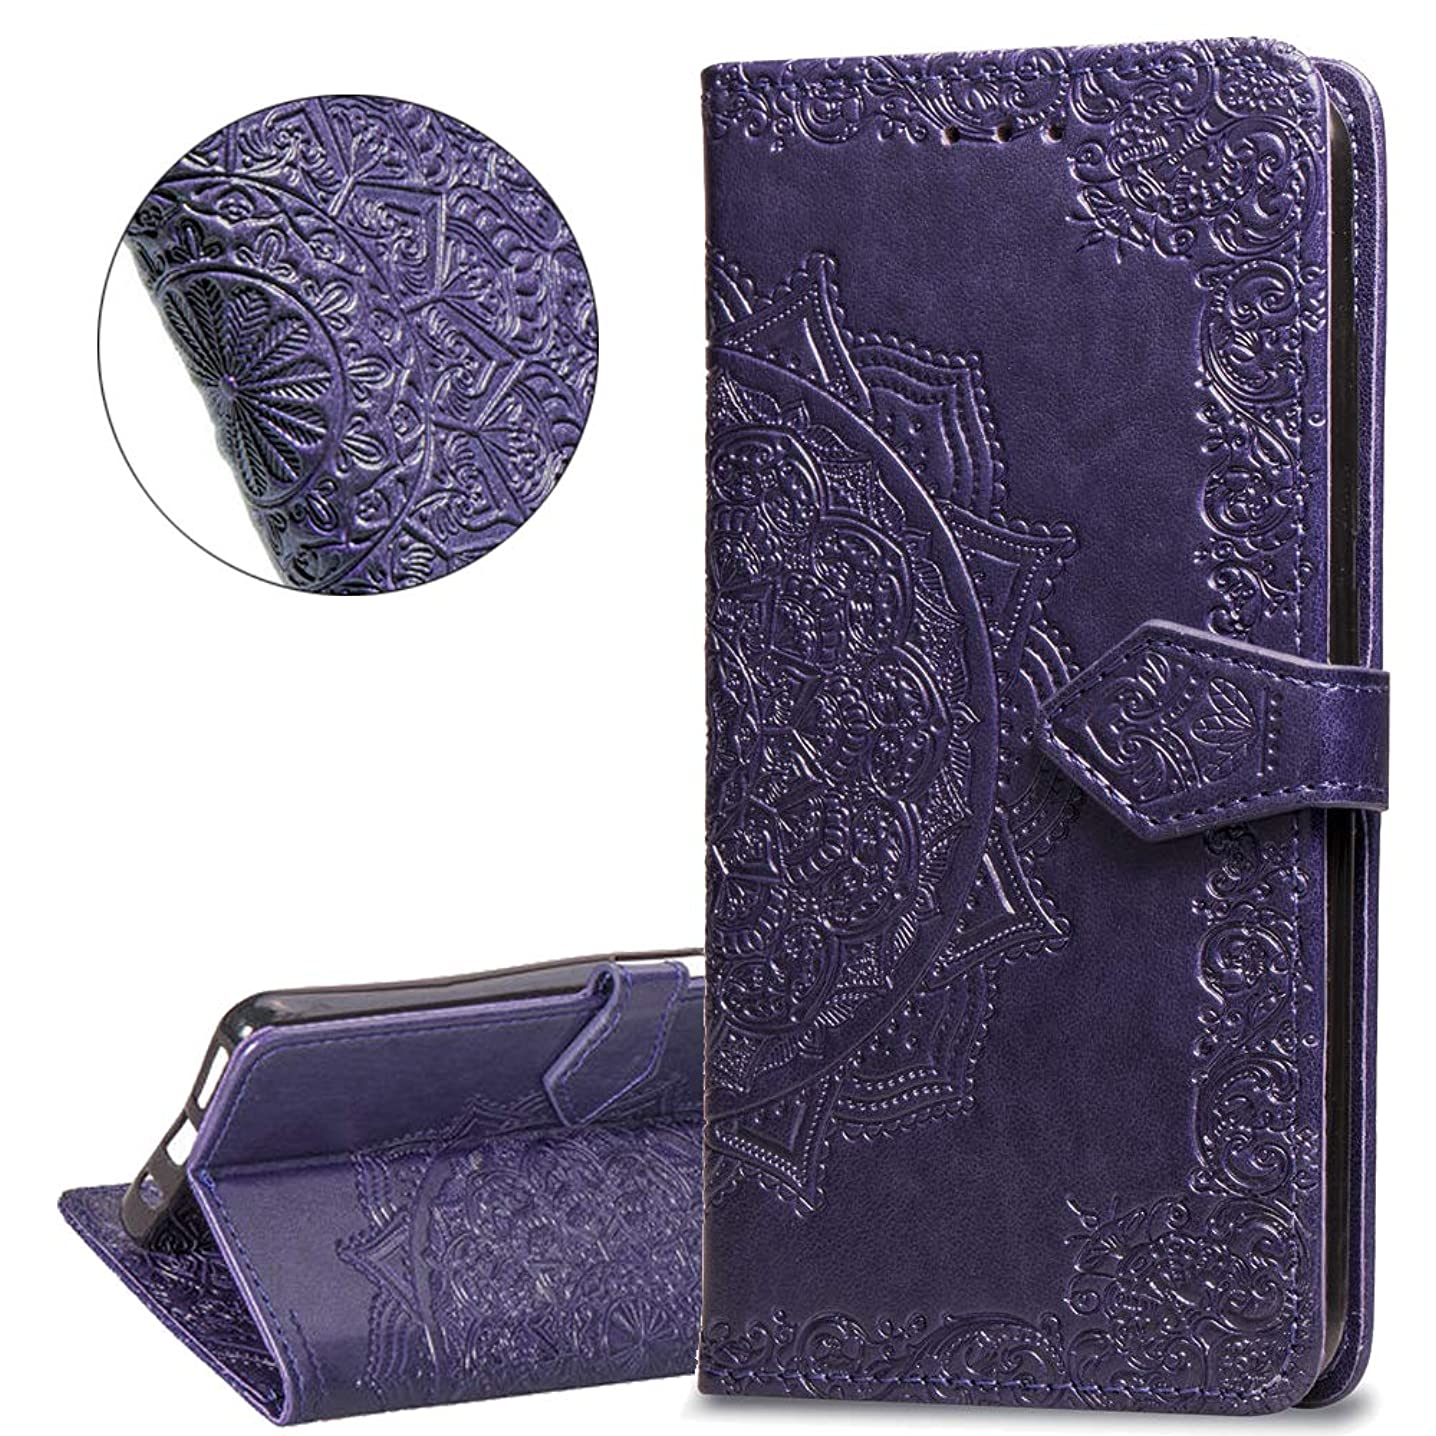 HMTECHUS J8 2018 case Embossed Solid Color Flower Card Slots PU Leather Wallet Bookstyle Magnetic Flip Stand Shockproof Protection Slim Cover for Samsung Galaxy J8 2018 -Mandala Purple SD